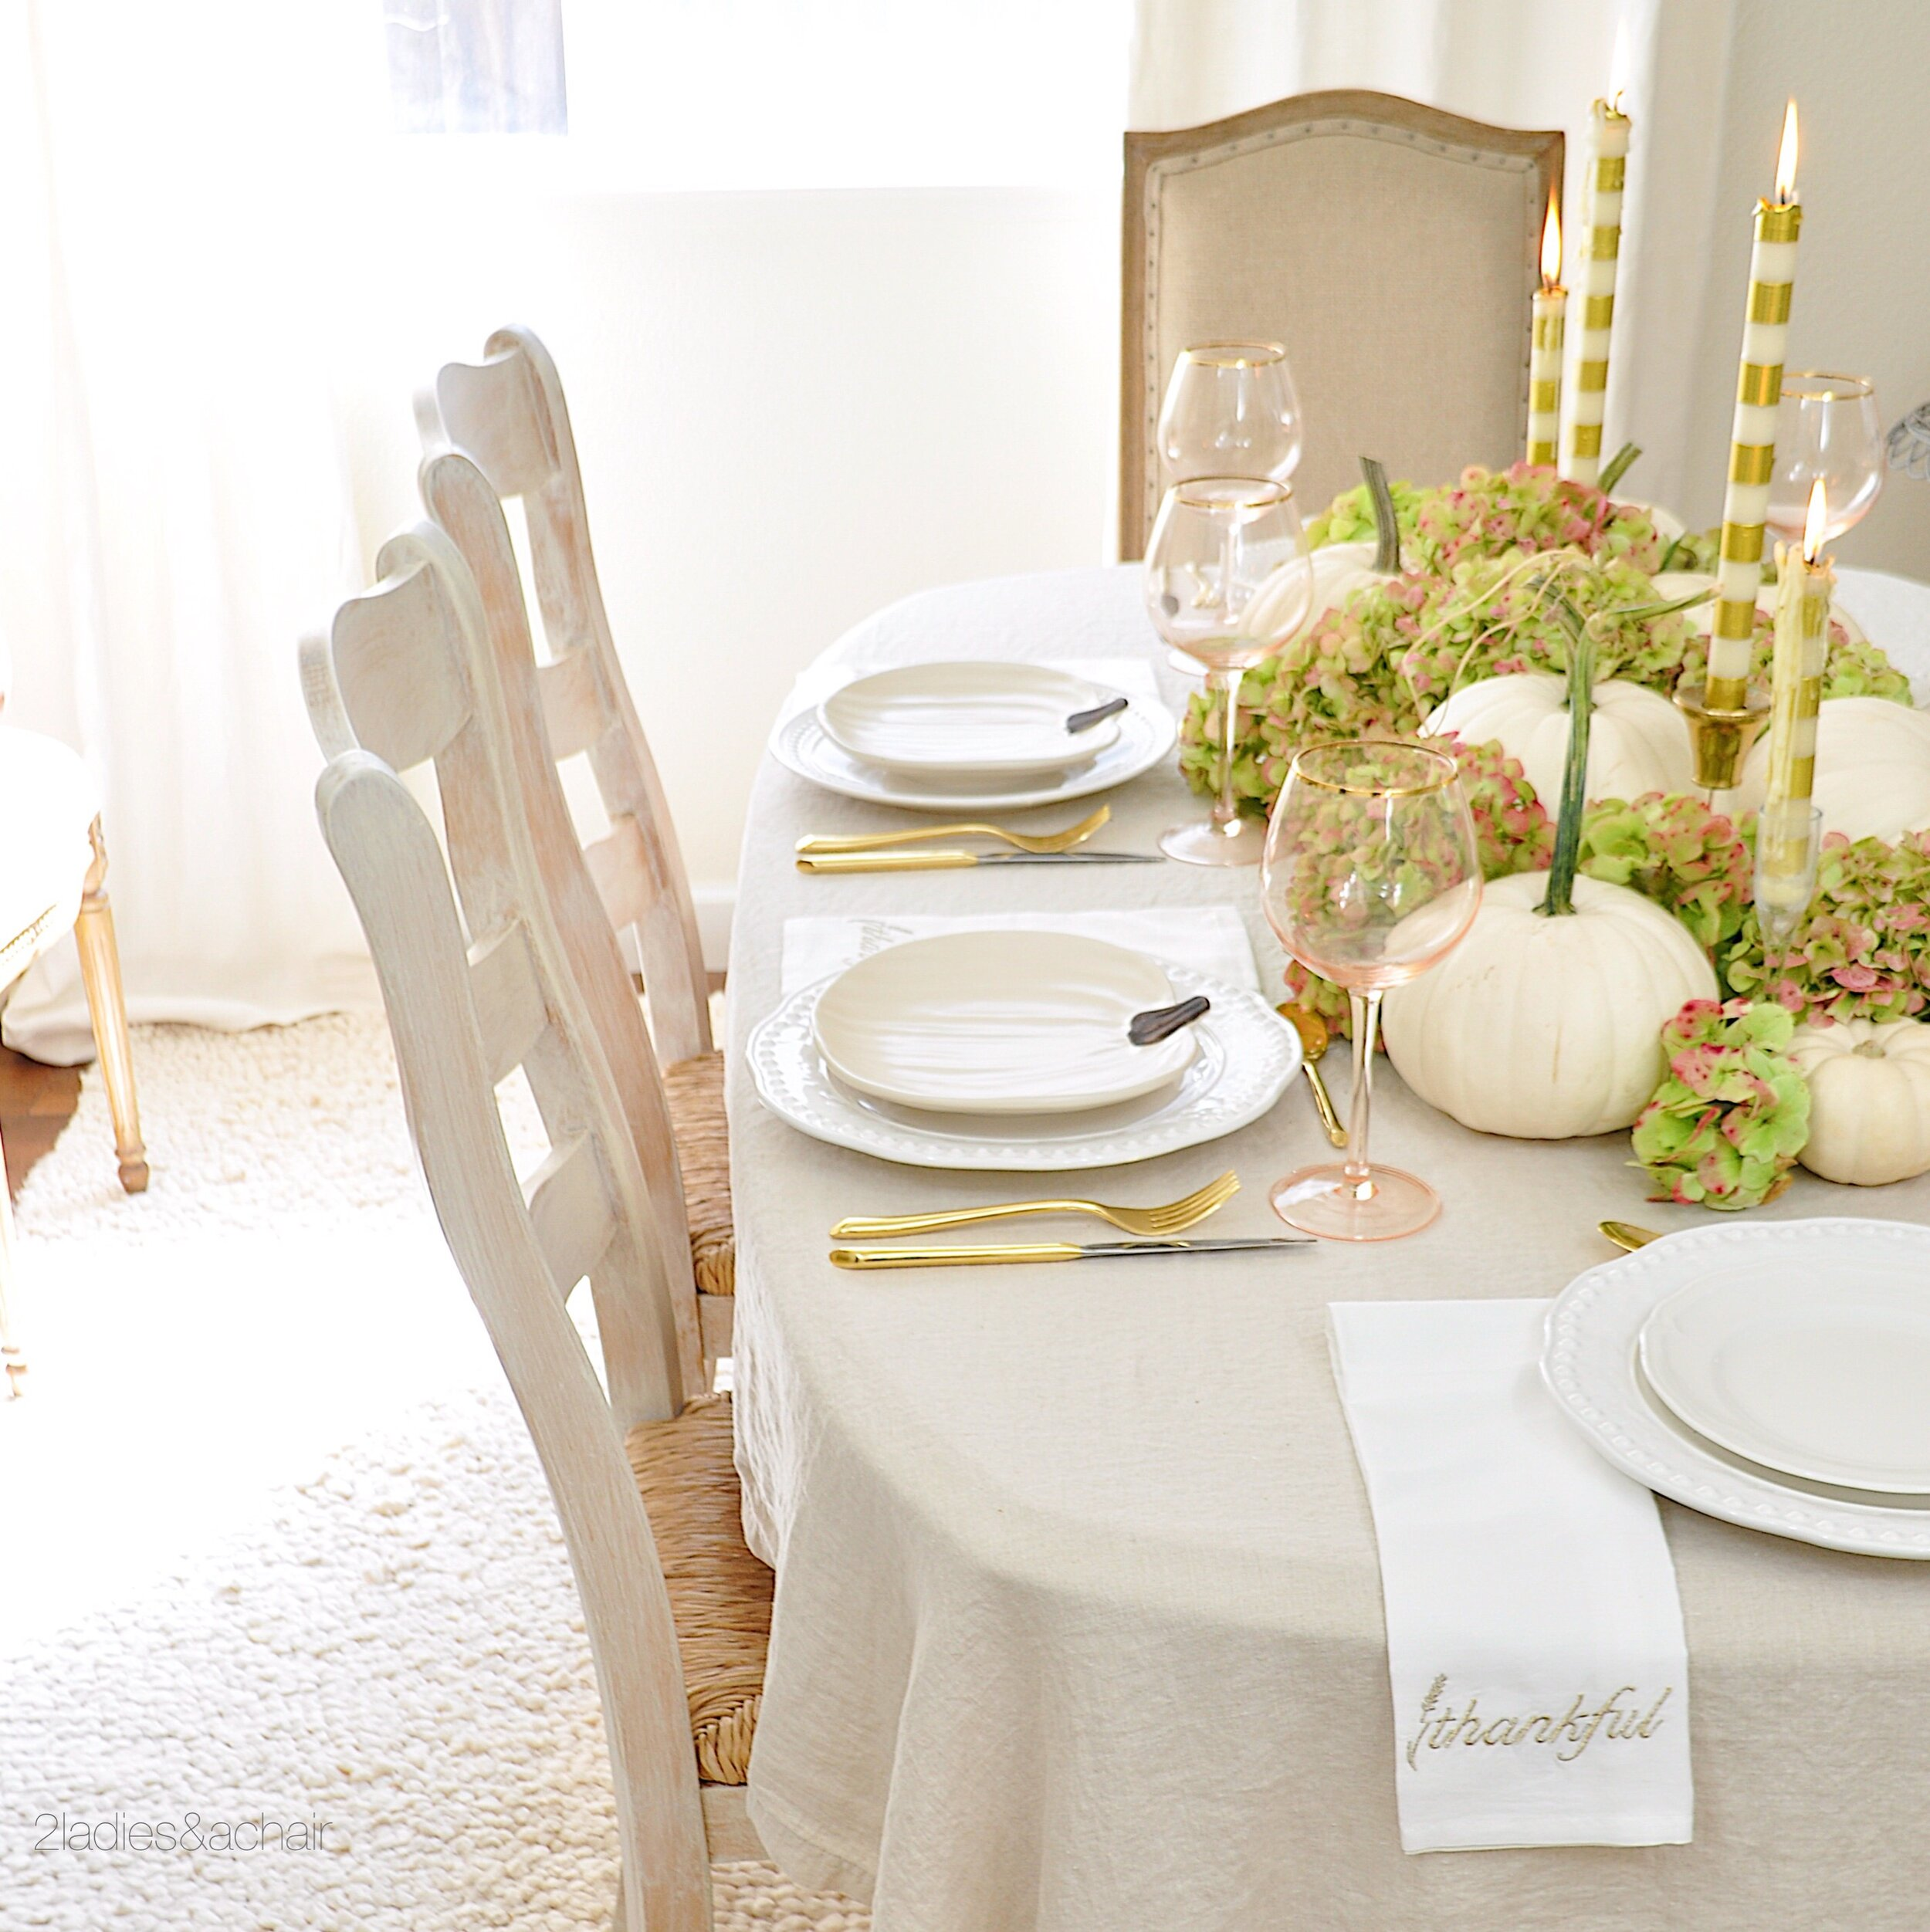 thanksgiving table IMG_1478.JPG